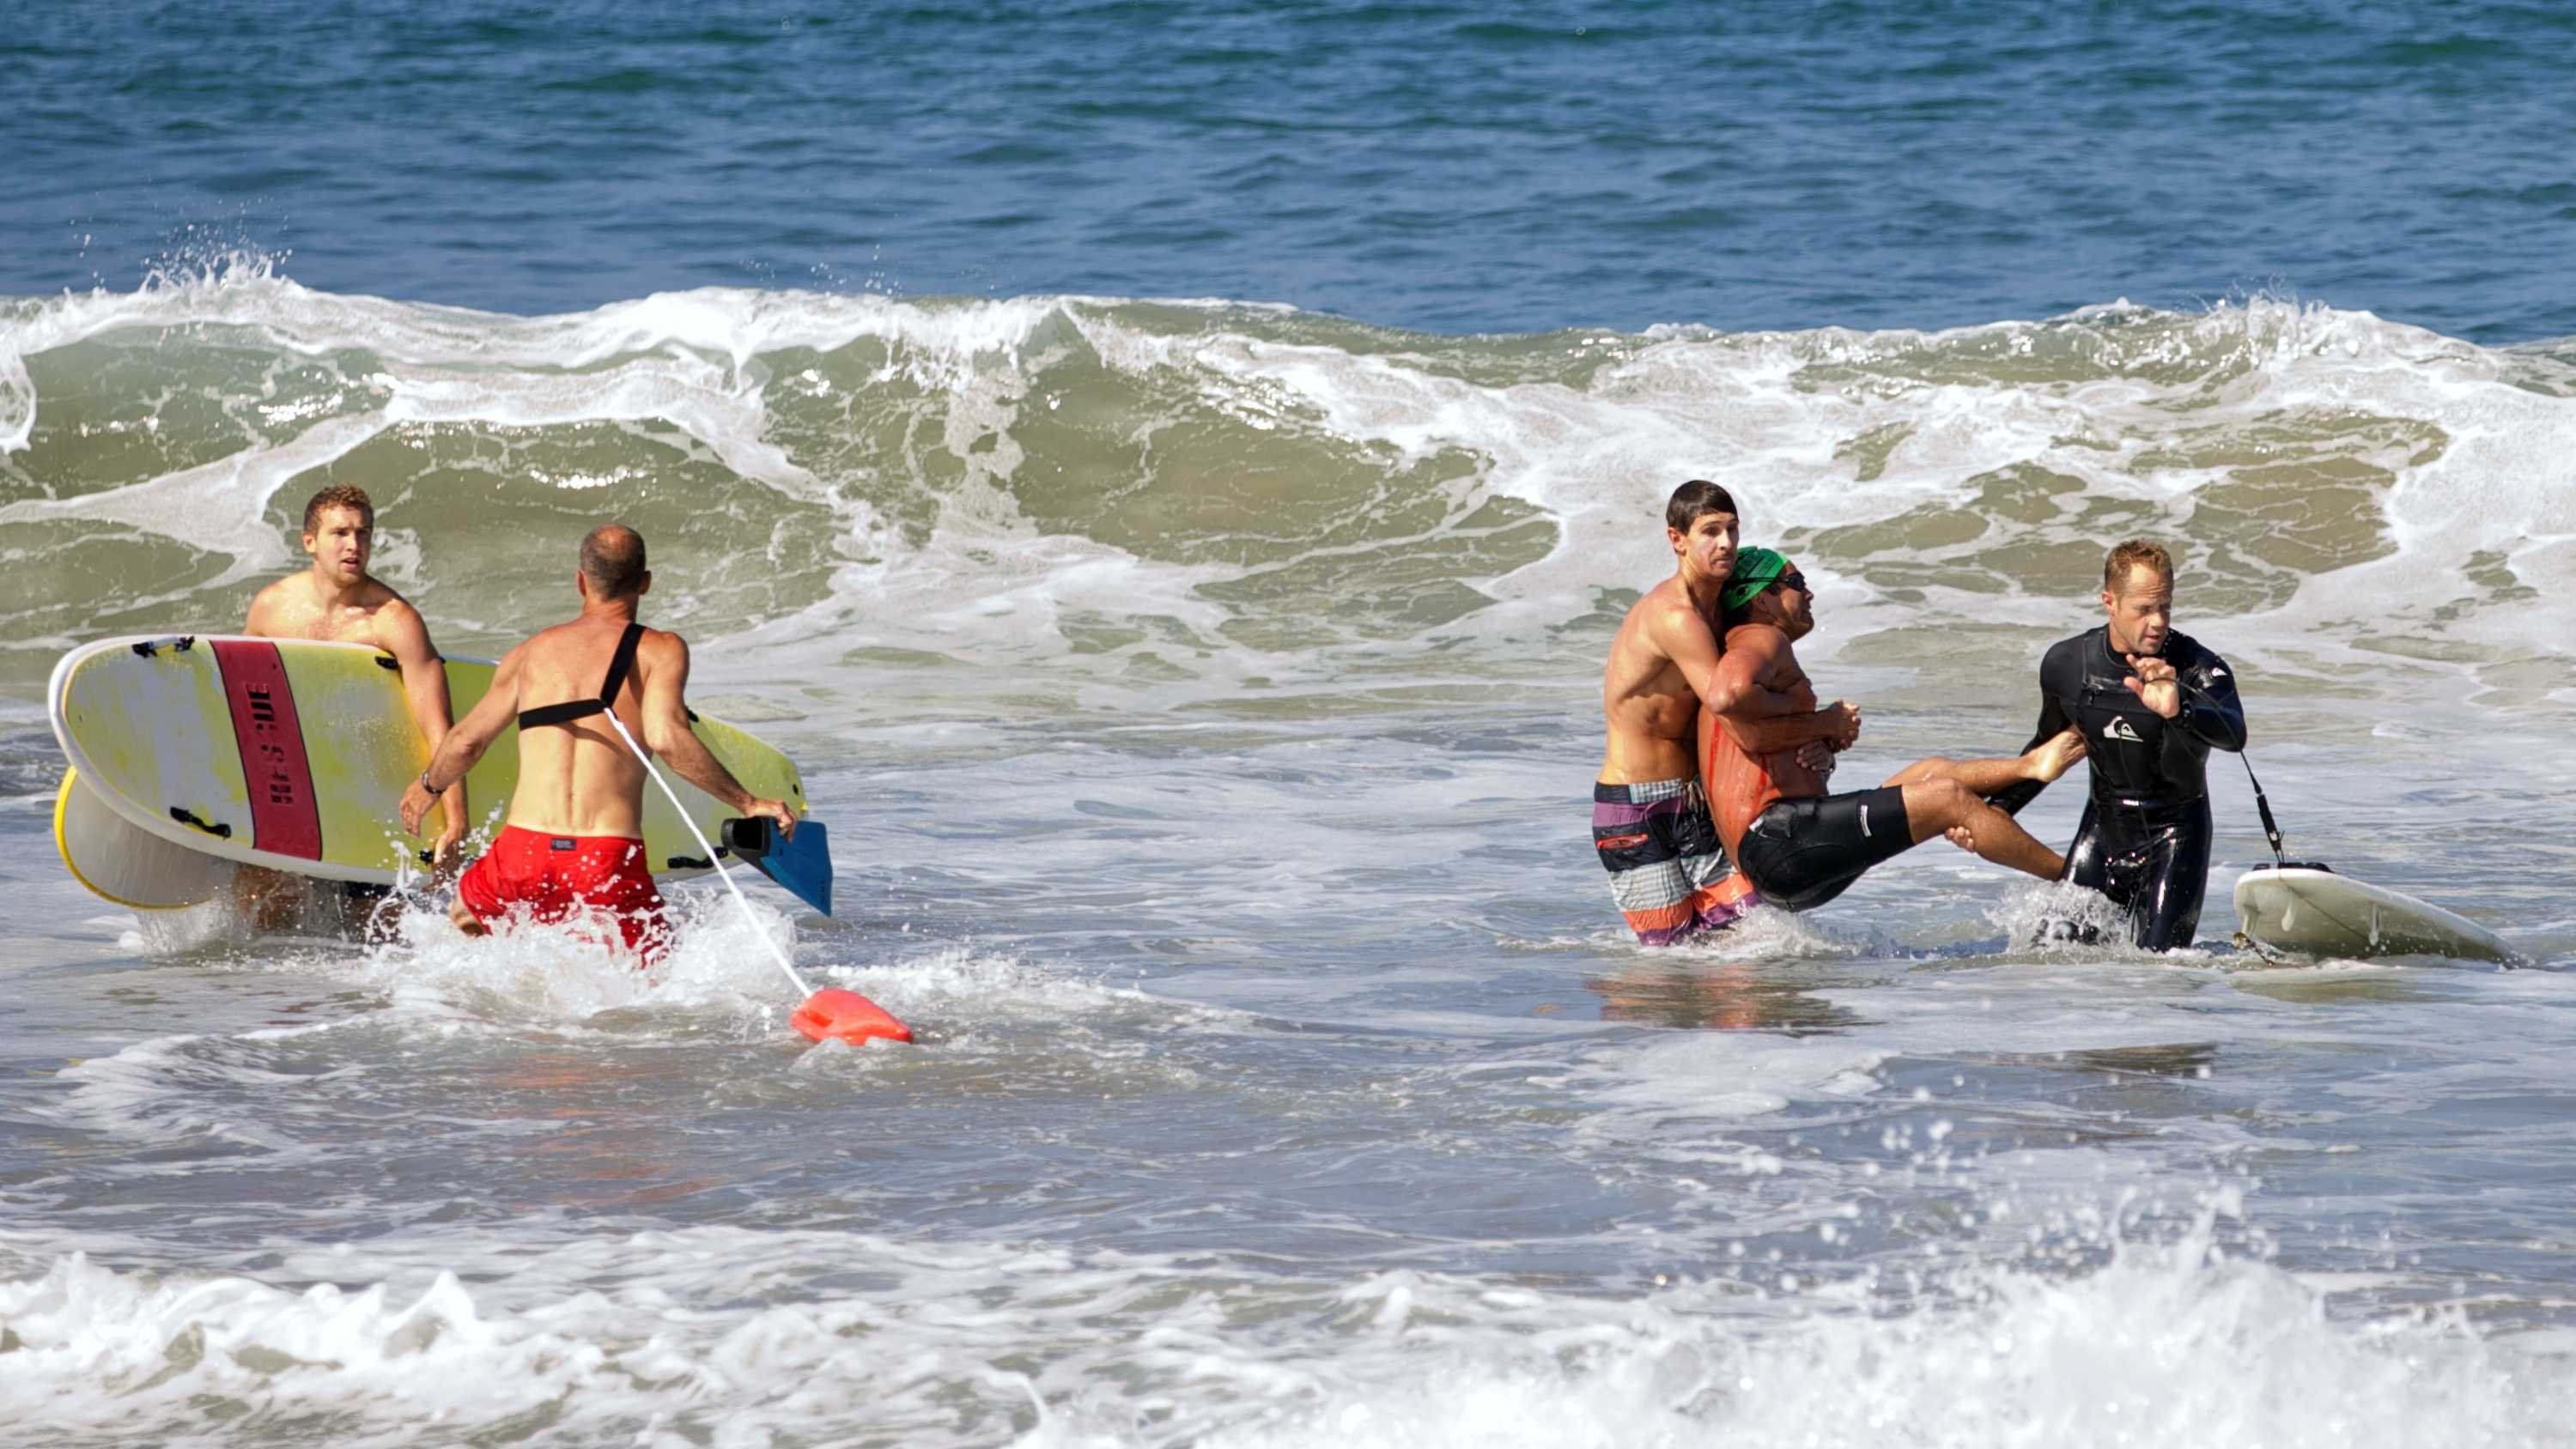 In this photo by Laura Joyce of goofyfootphotography.com, two men carry a swimmer, second from right, after he was bitten by a great white shark, as lifeguards close in at left in the ocean off Southern California's Manhattan Beach, Saturday, July 5, 2014. The man, who was with a group of long-distance swimmers when he swam into a fishing line, was bitten on a side of his rib cage according to Rick Flores, a Los Angeles County Fire Department spokesman. The man's injuries were not life-threatening and he was taken to a hospital conscious and breathing on his own, Flores said.